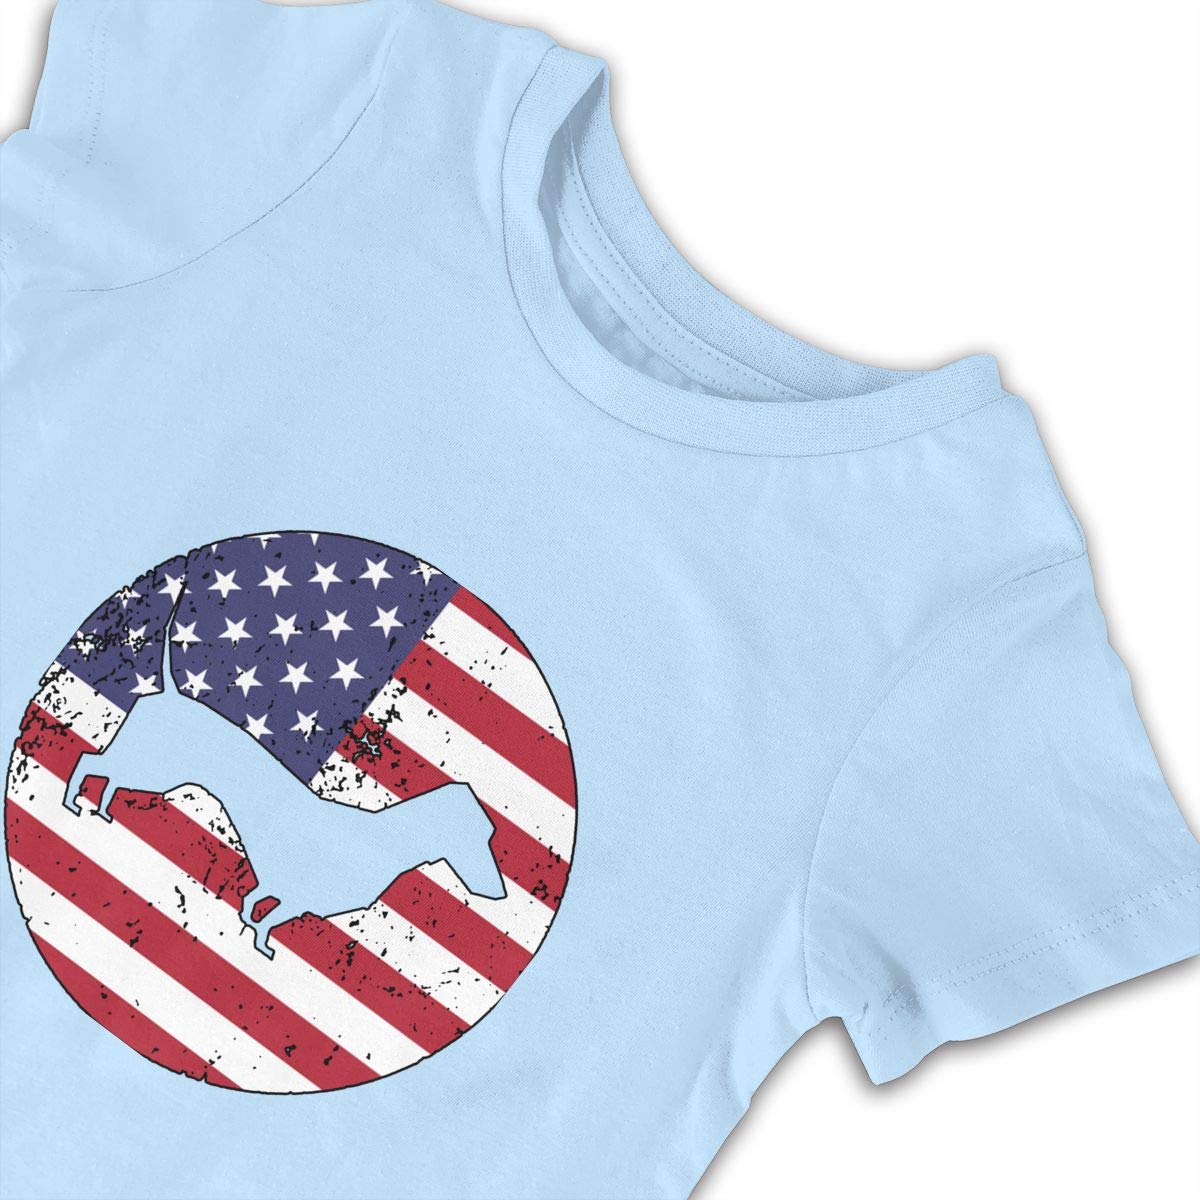 A1BY-5US Baby Infant Toddler Romper Jumpsuit American Flag Dachshund Cotton Short Sleeve Climb Jumpsuit